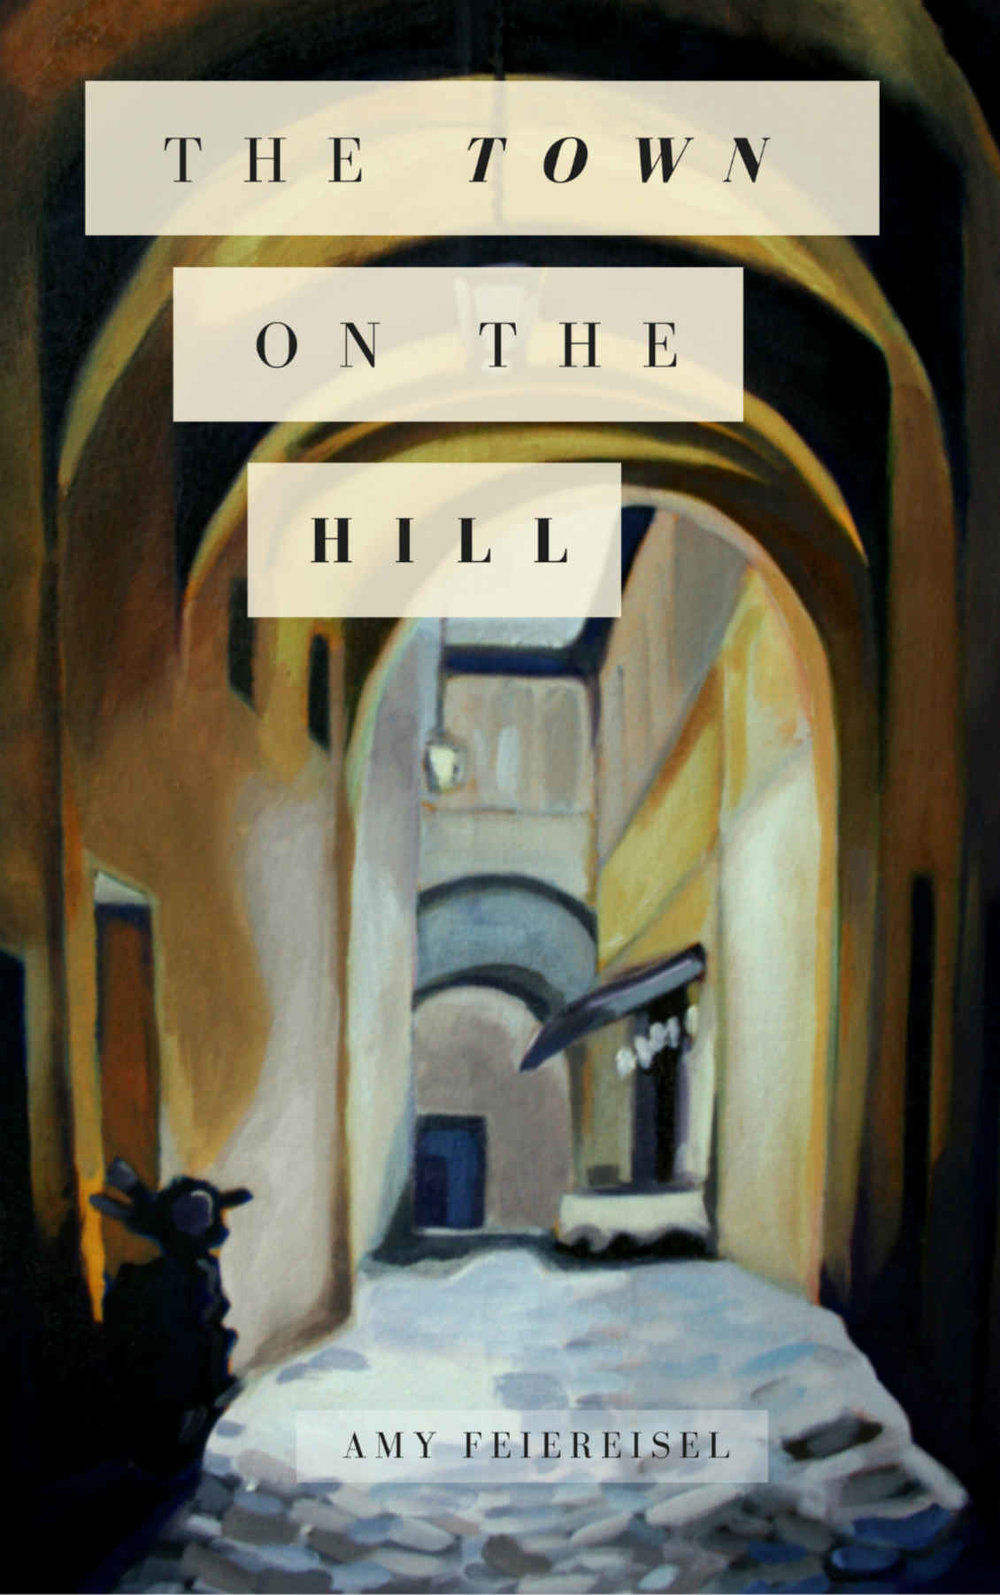 Amy Feiereisel: The Town on the Hill